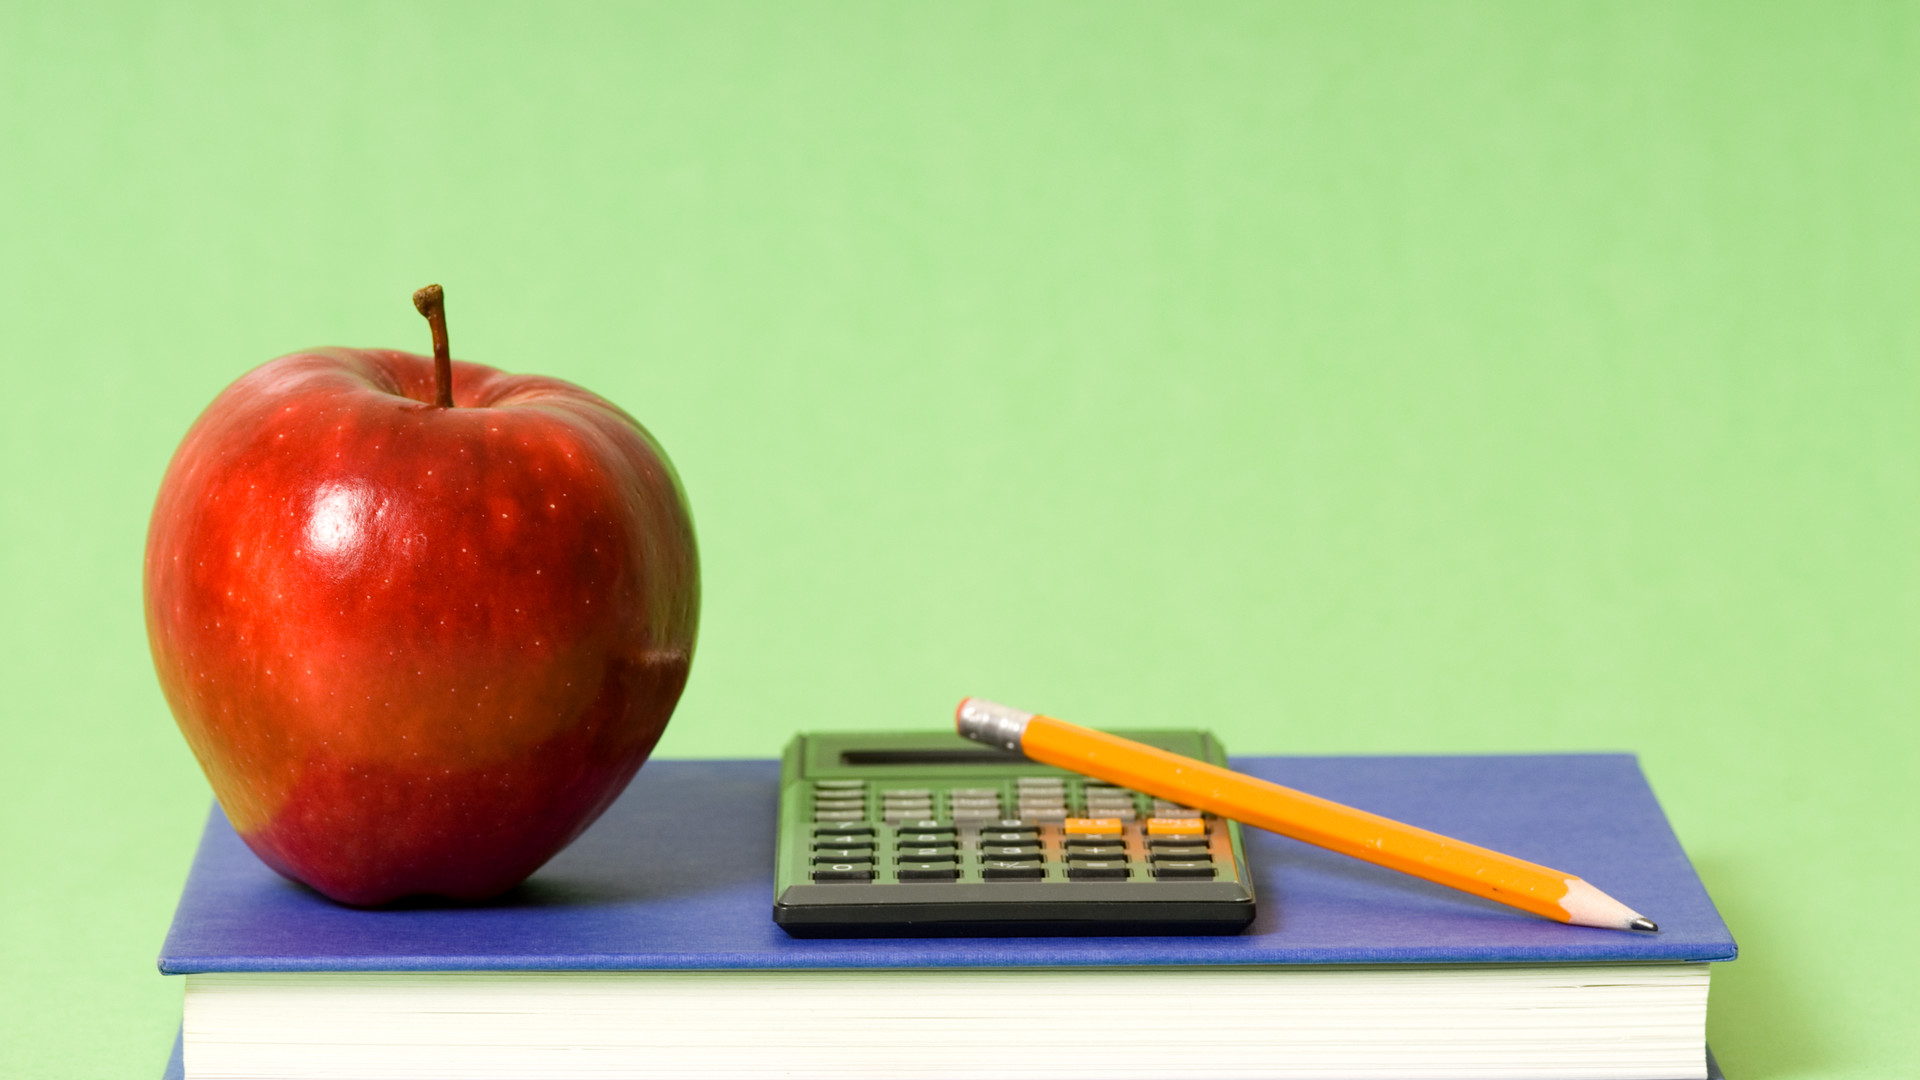 Book-apple-pencil-and-calculator-basic-school-stuff_1920x1080